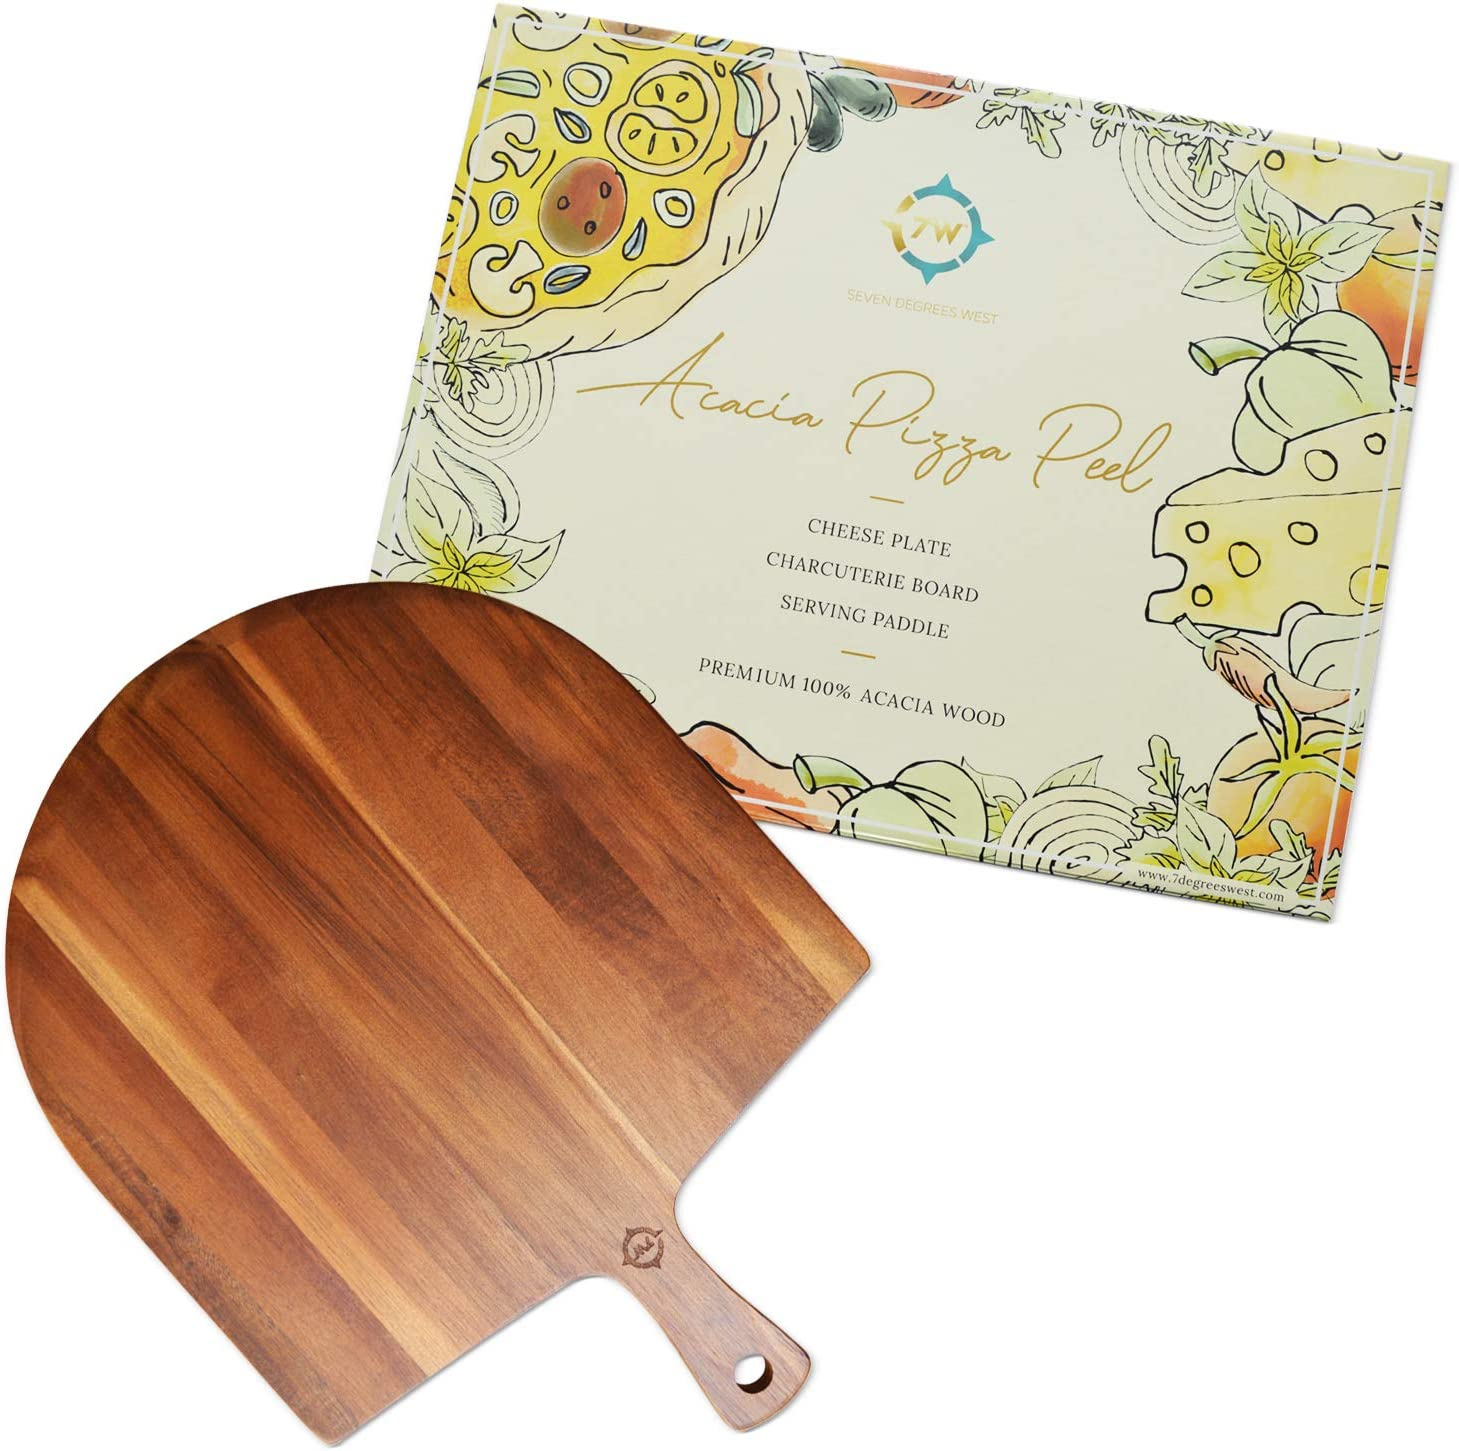 Acacia Wood Pizza Peel - Cheese, Fruit, or Crackers Tray - Charcuterie Board - Spatula for Baking - Farmhouse Wall Decor - Bread Board - Food Serving Plate - Great for Gifts